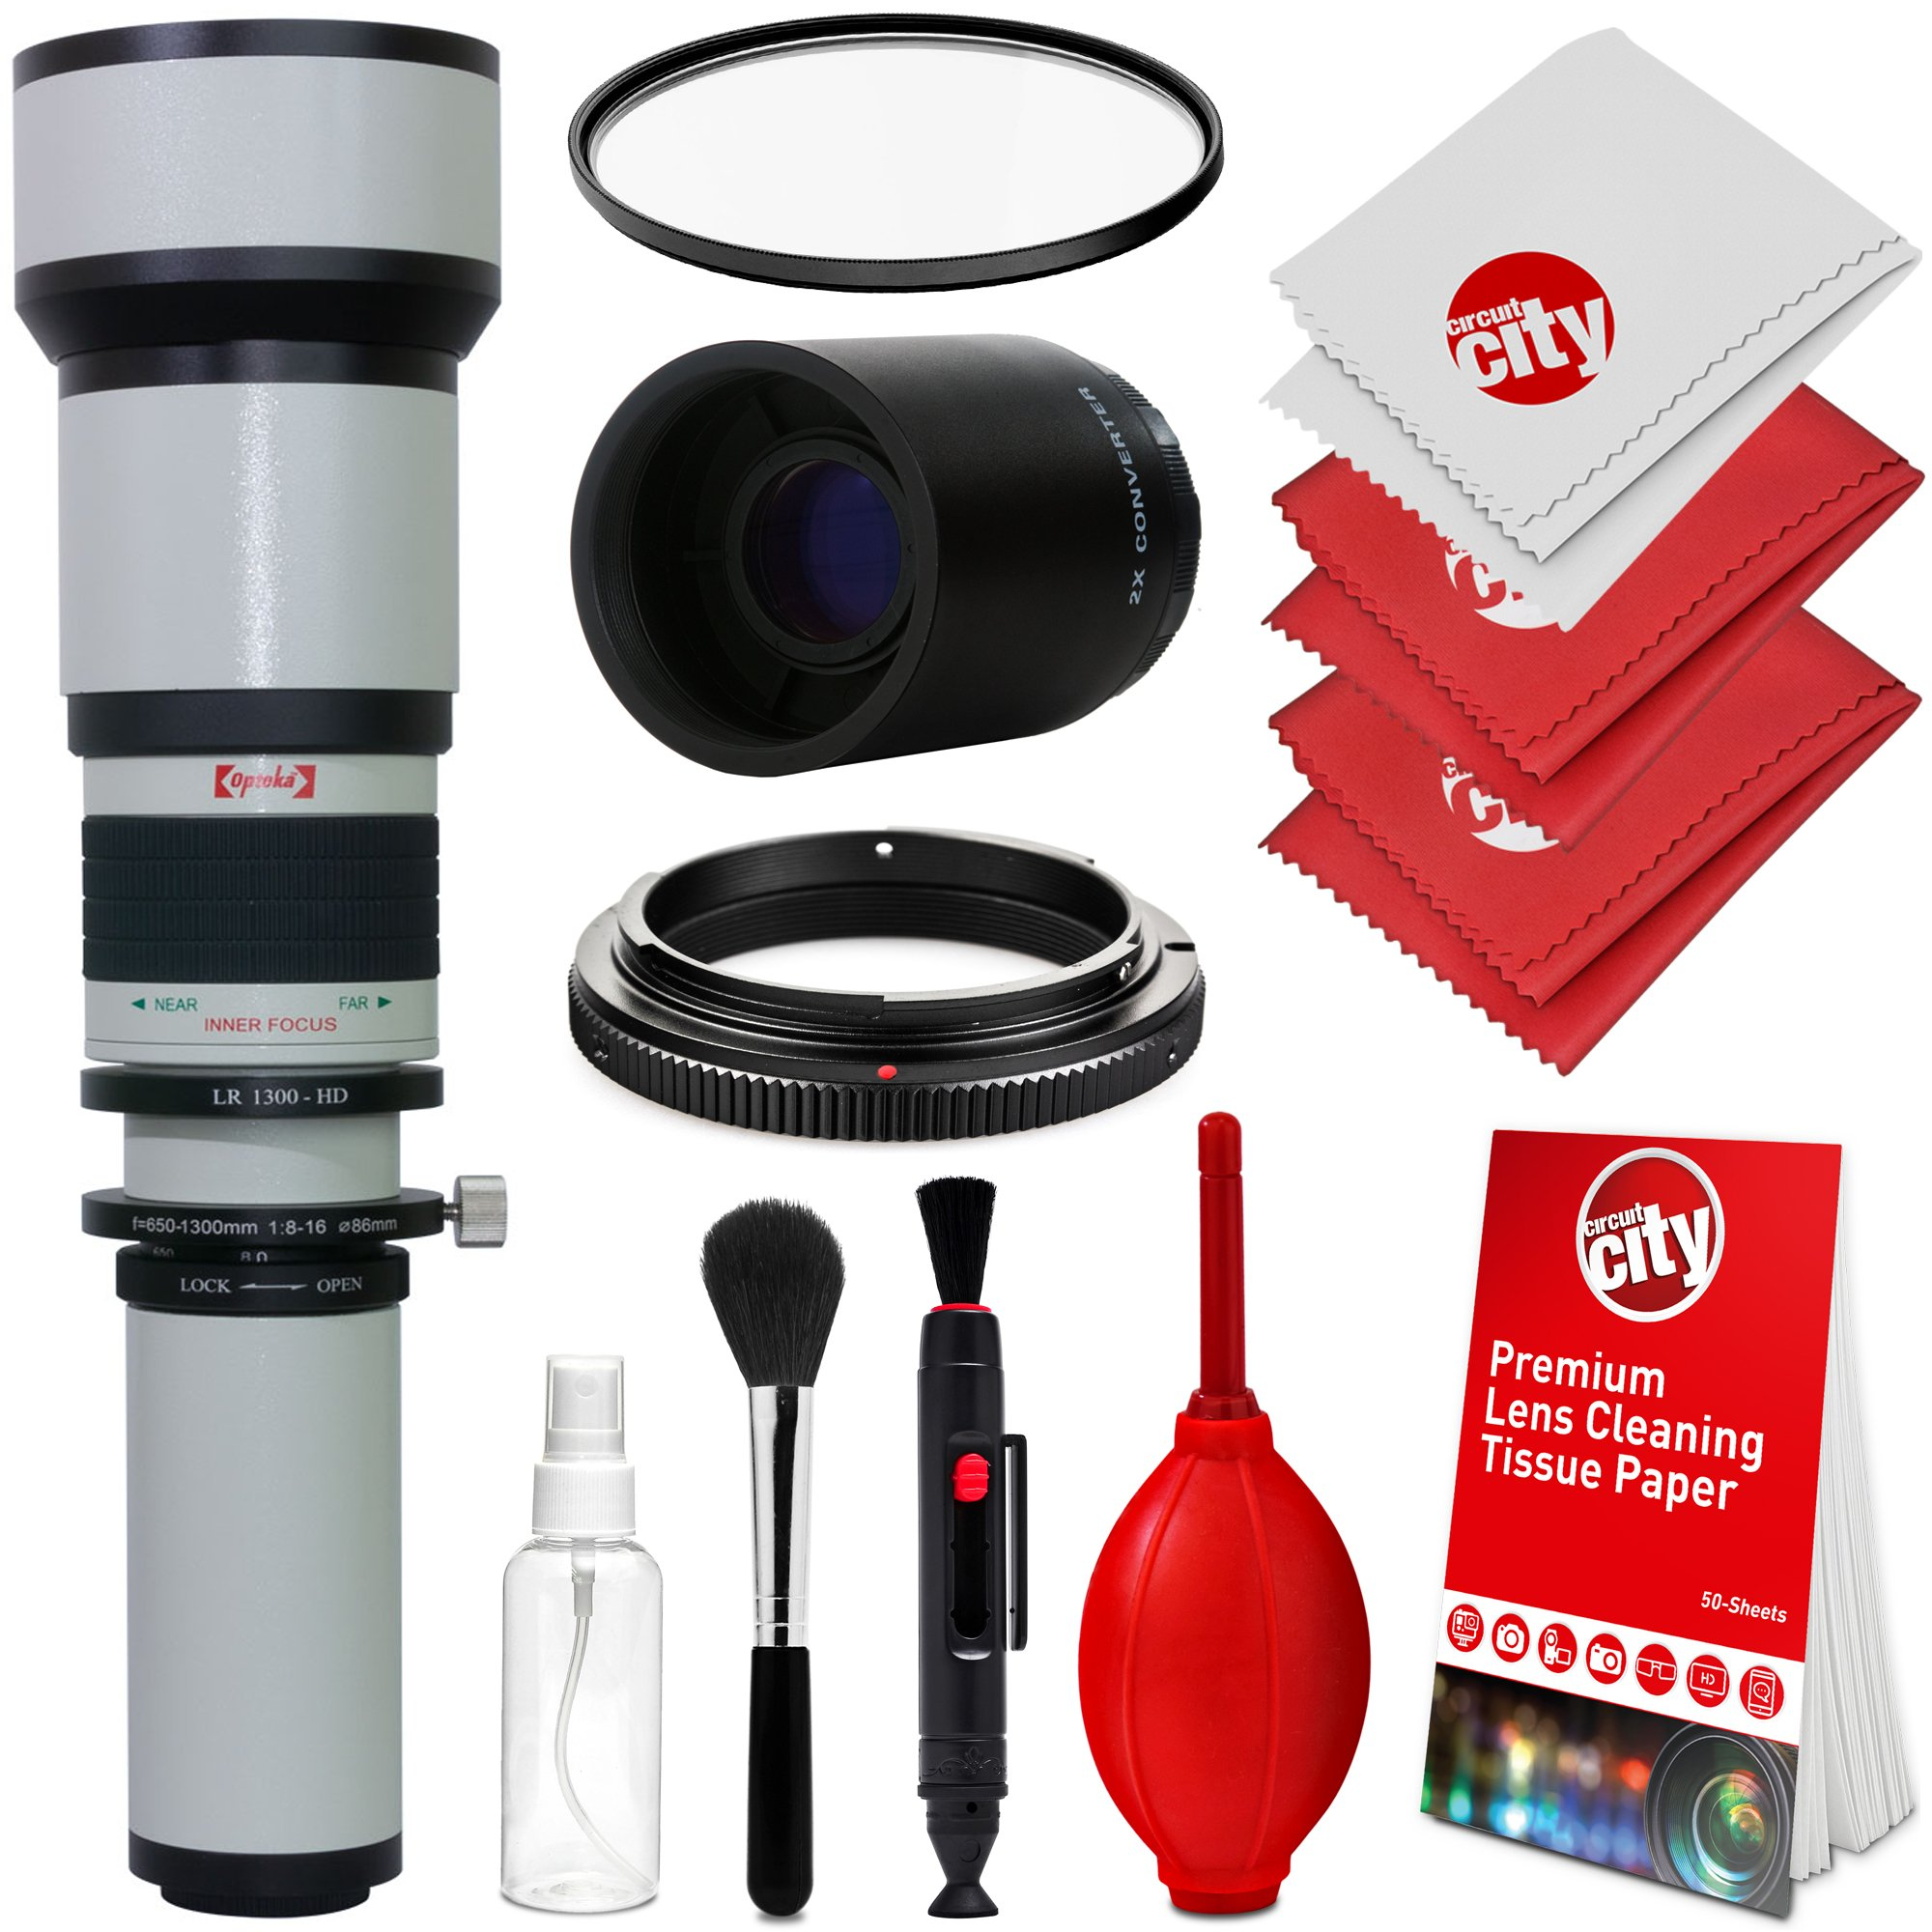 Opteka 650-1300mm (with 2X- 1300-2600mm) f/8 Manual Telephoto Lens + UV for Nikon D5, D4, D810, D800, D750, D610, D500, D7200, D7100, D5500, D5300, D5200, D3400, D3300 and D3200 Digital SLR Cameras